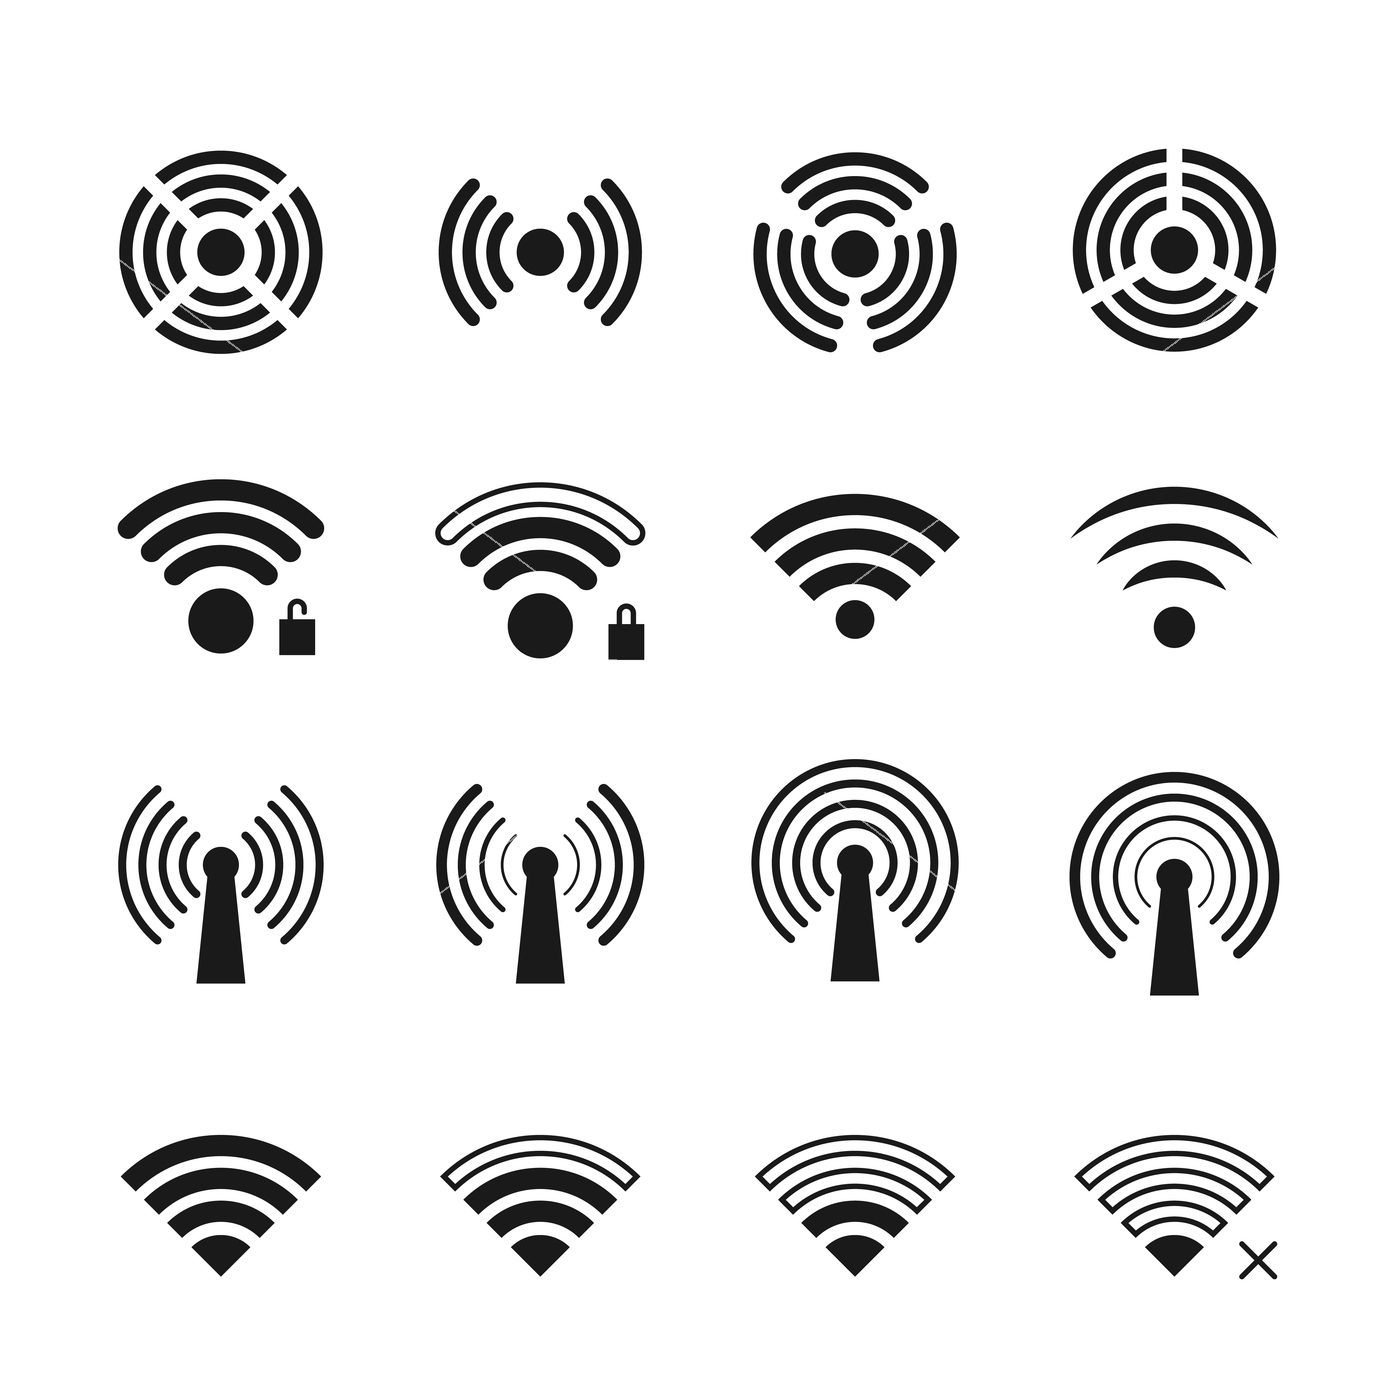 1400x1400 Wireless And Wifi Vector Icons By Microvector